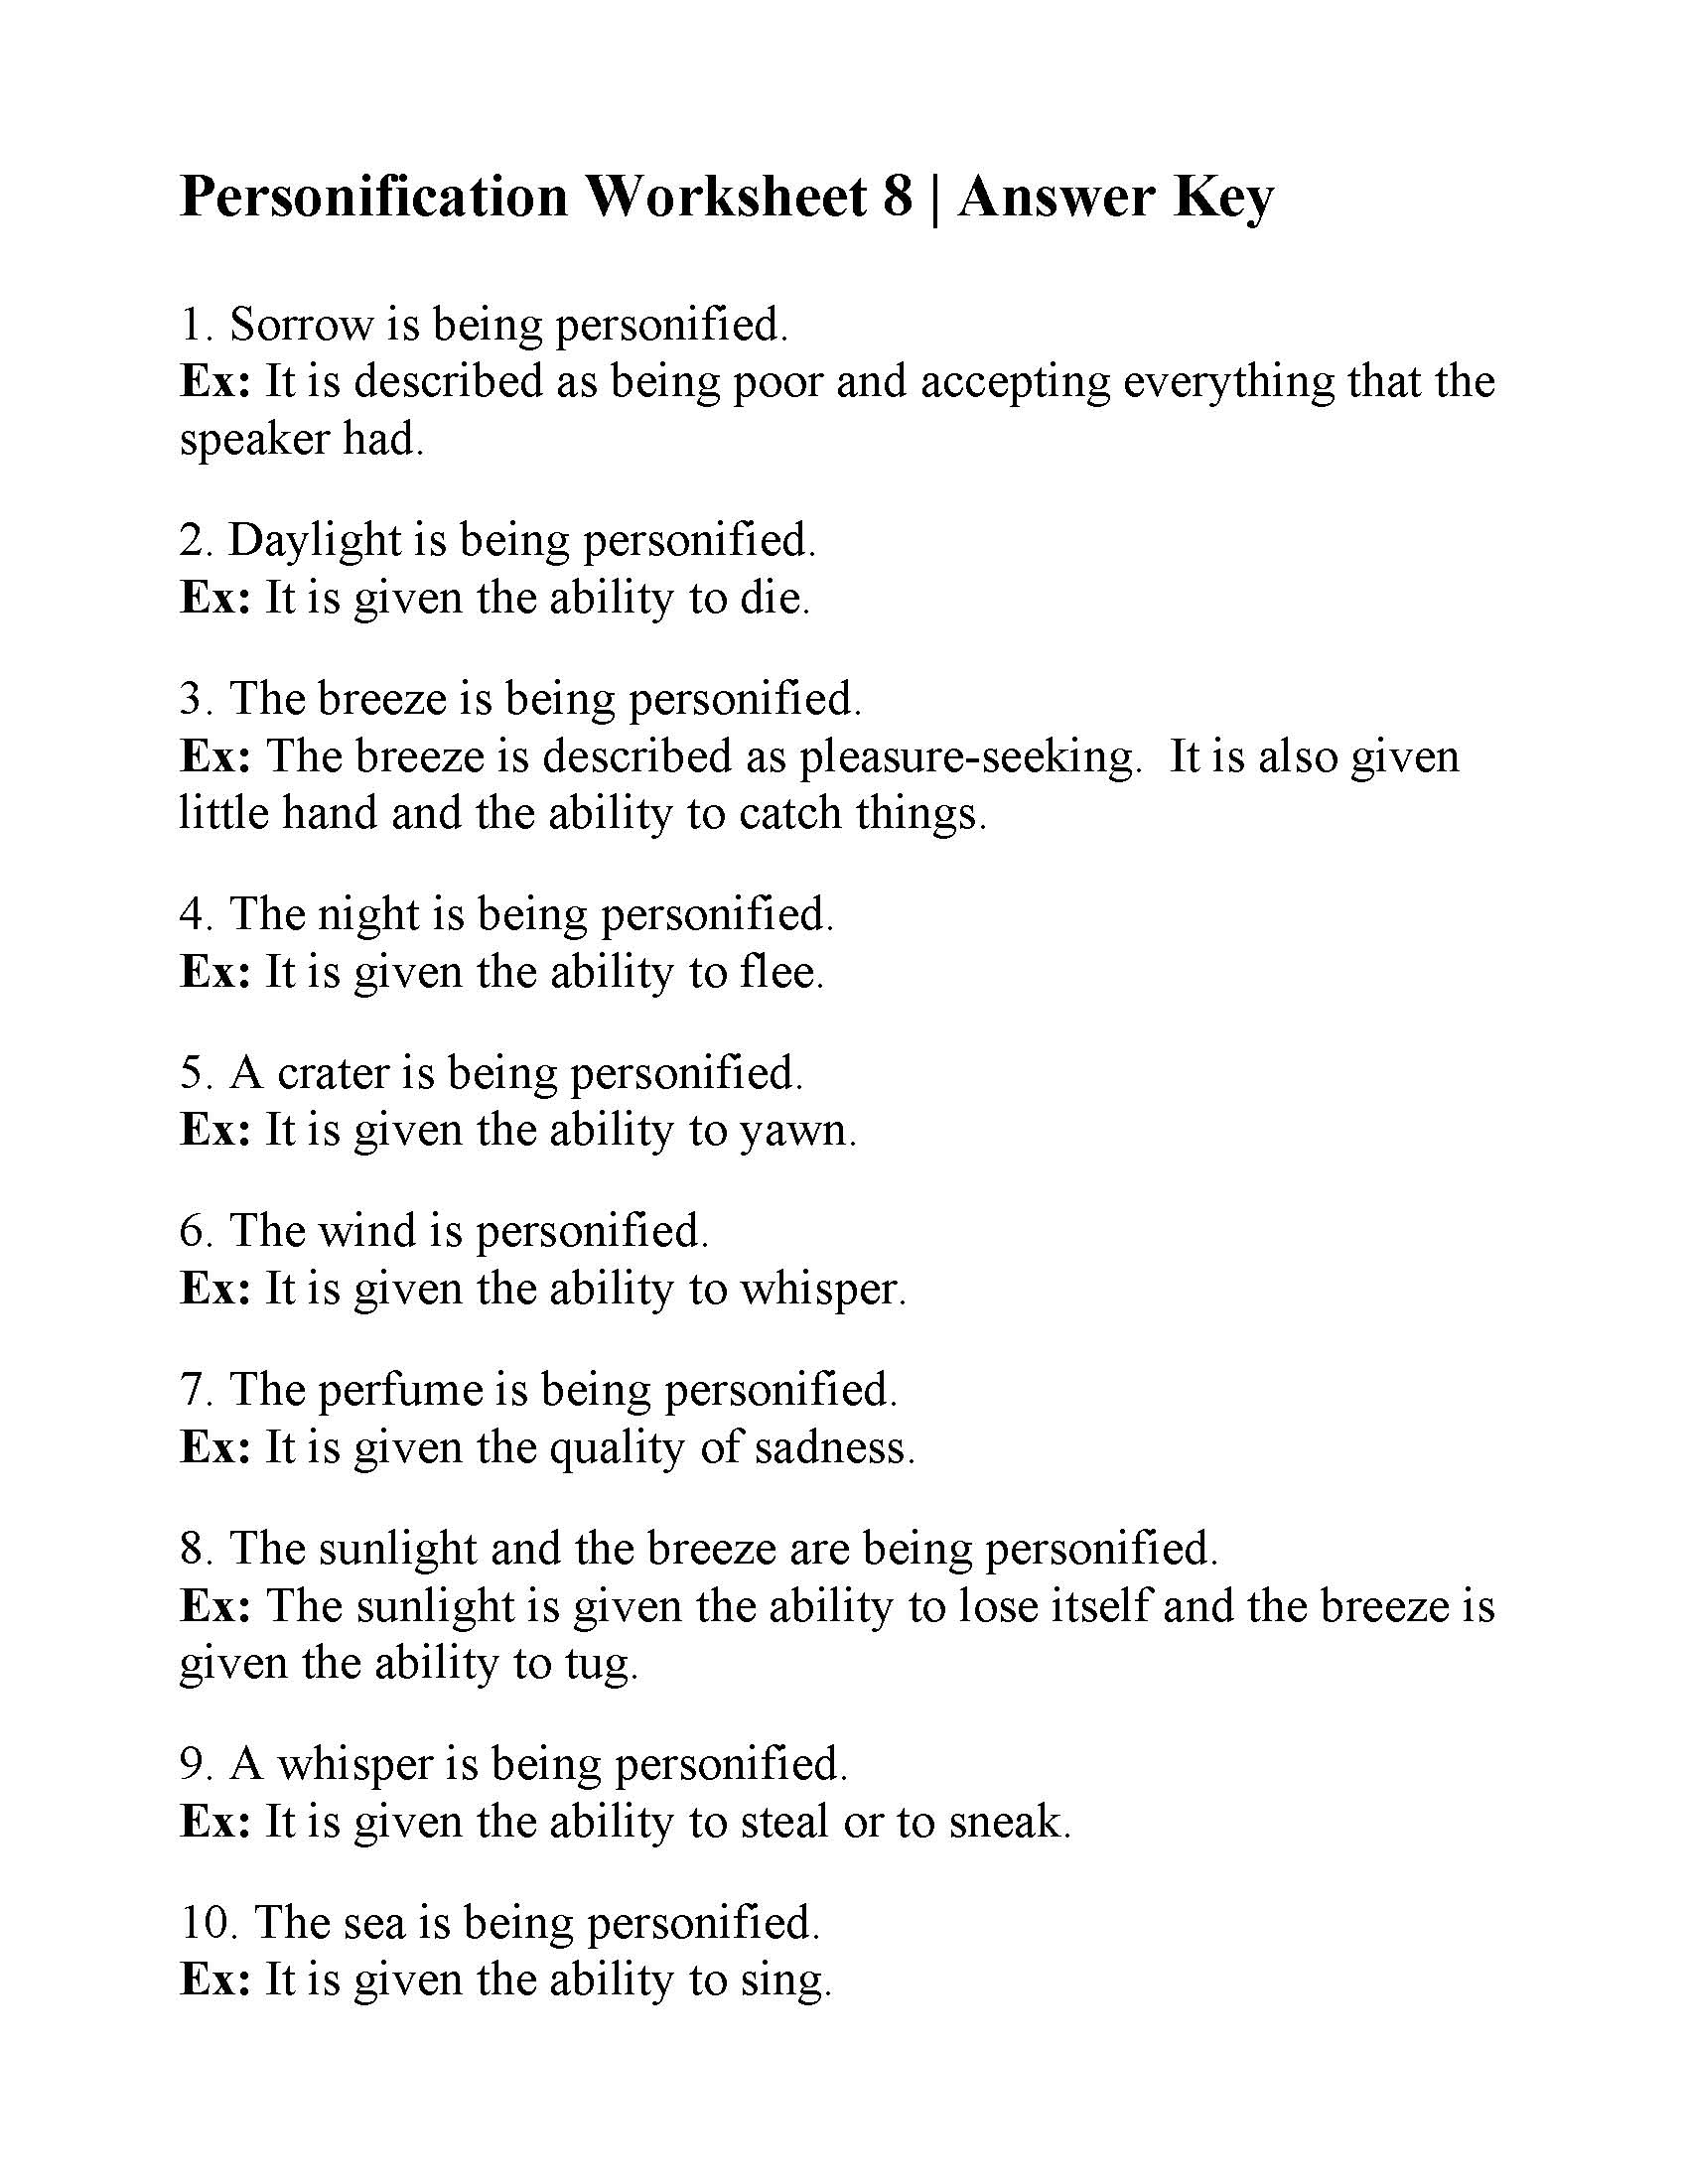 Worksheets Personification Worksheets personification worksheet 8 answers this is the answer key for 8